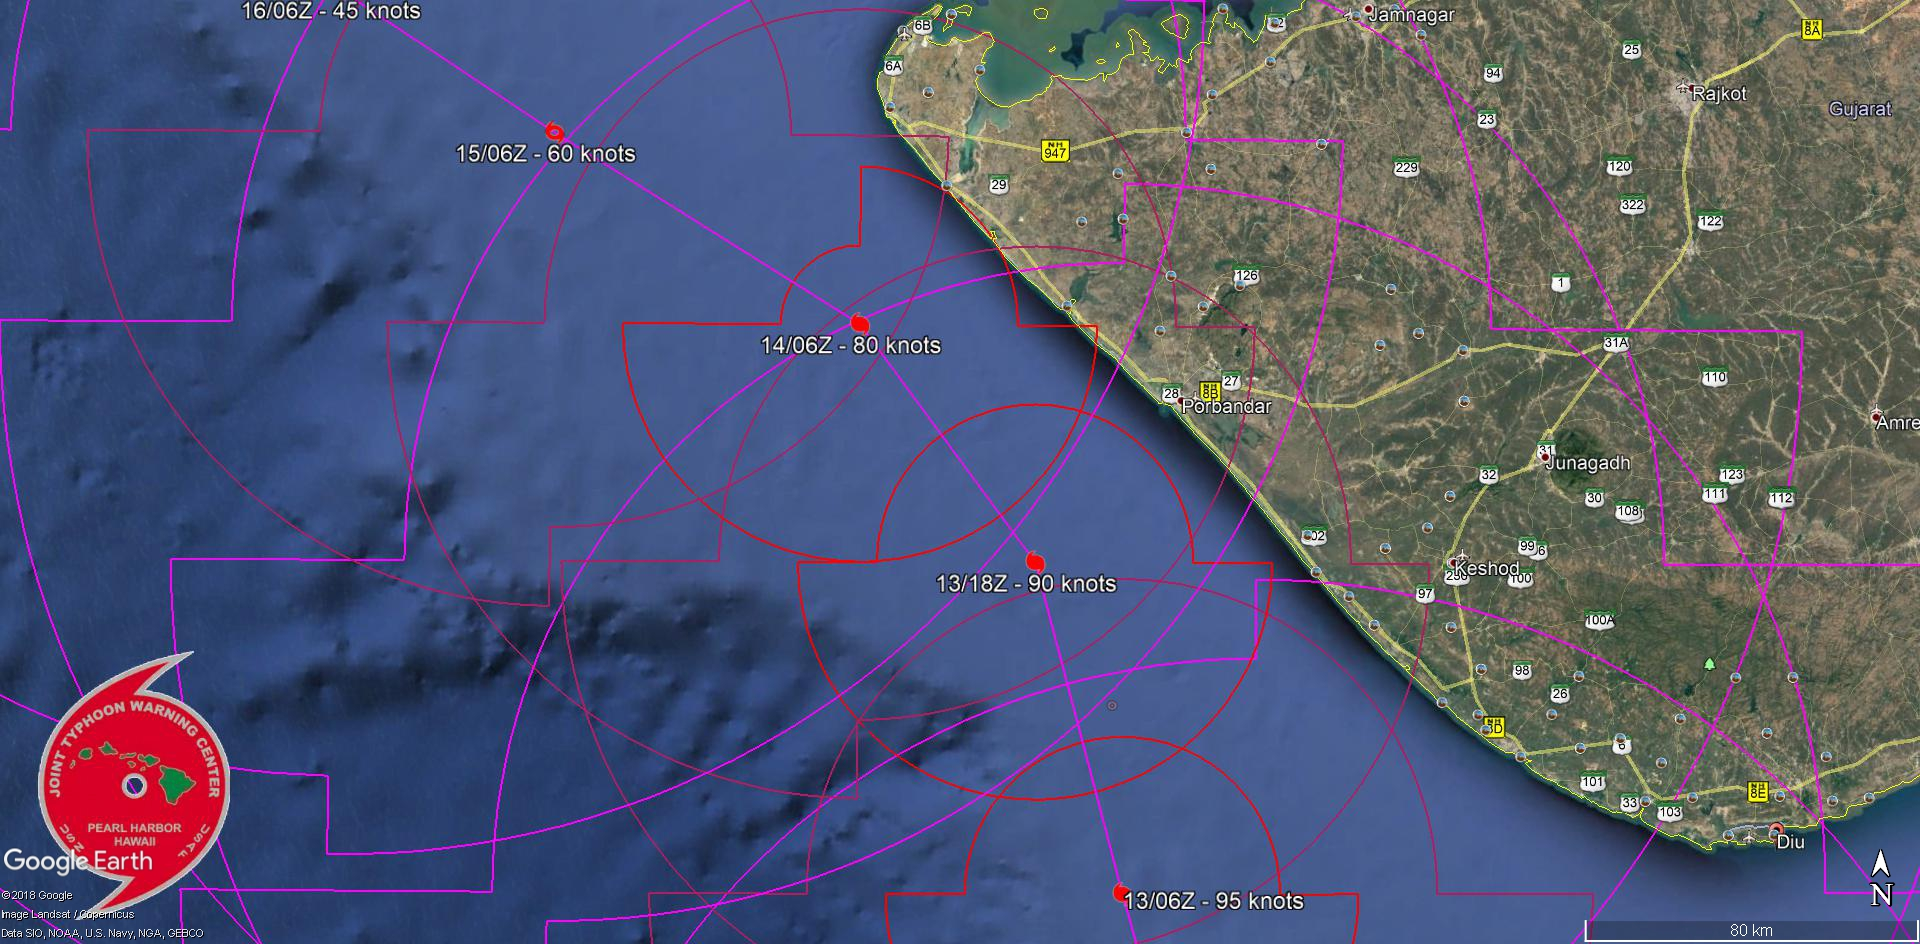 FORECAST TO TRACK CLOSE TO PORBANDAR IN 36H